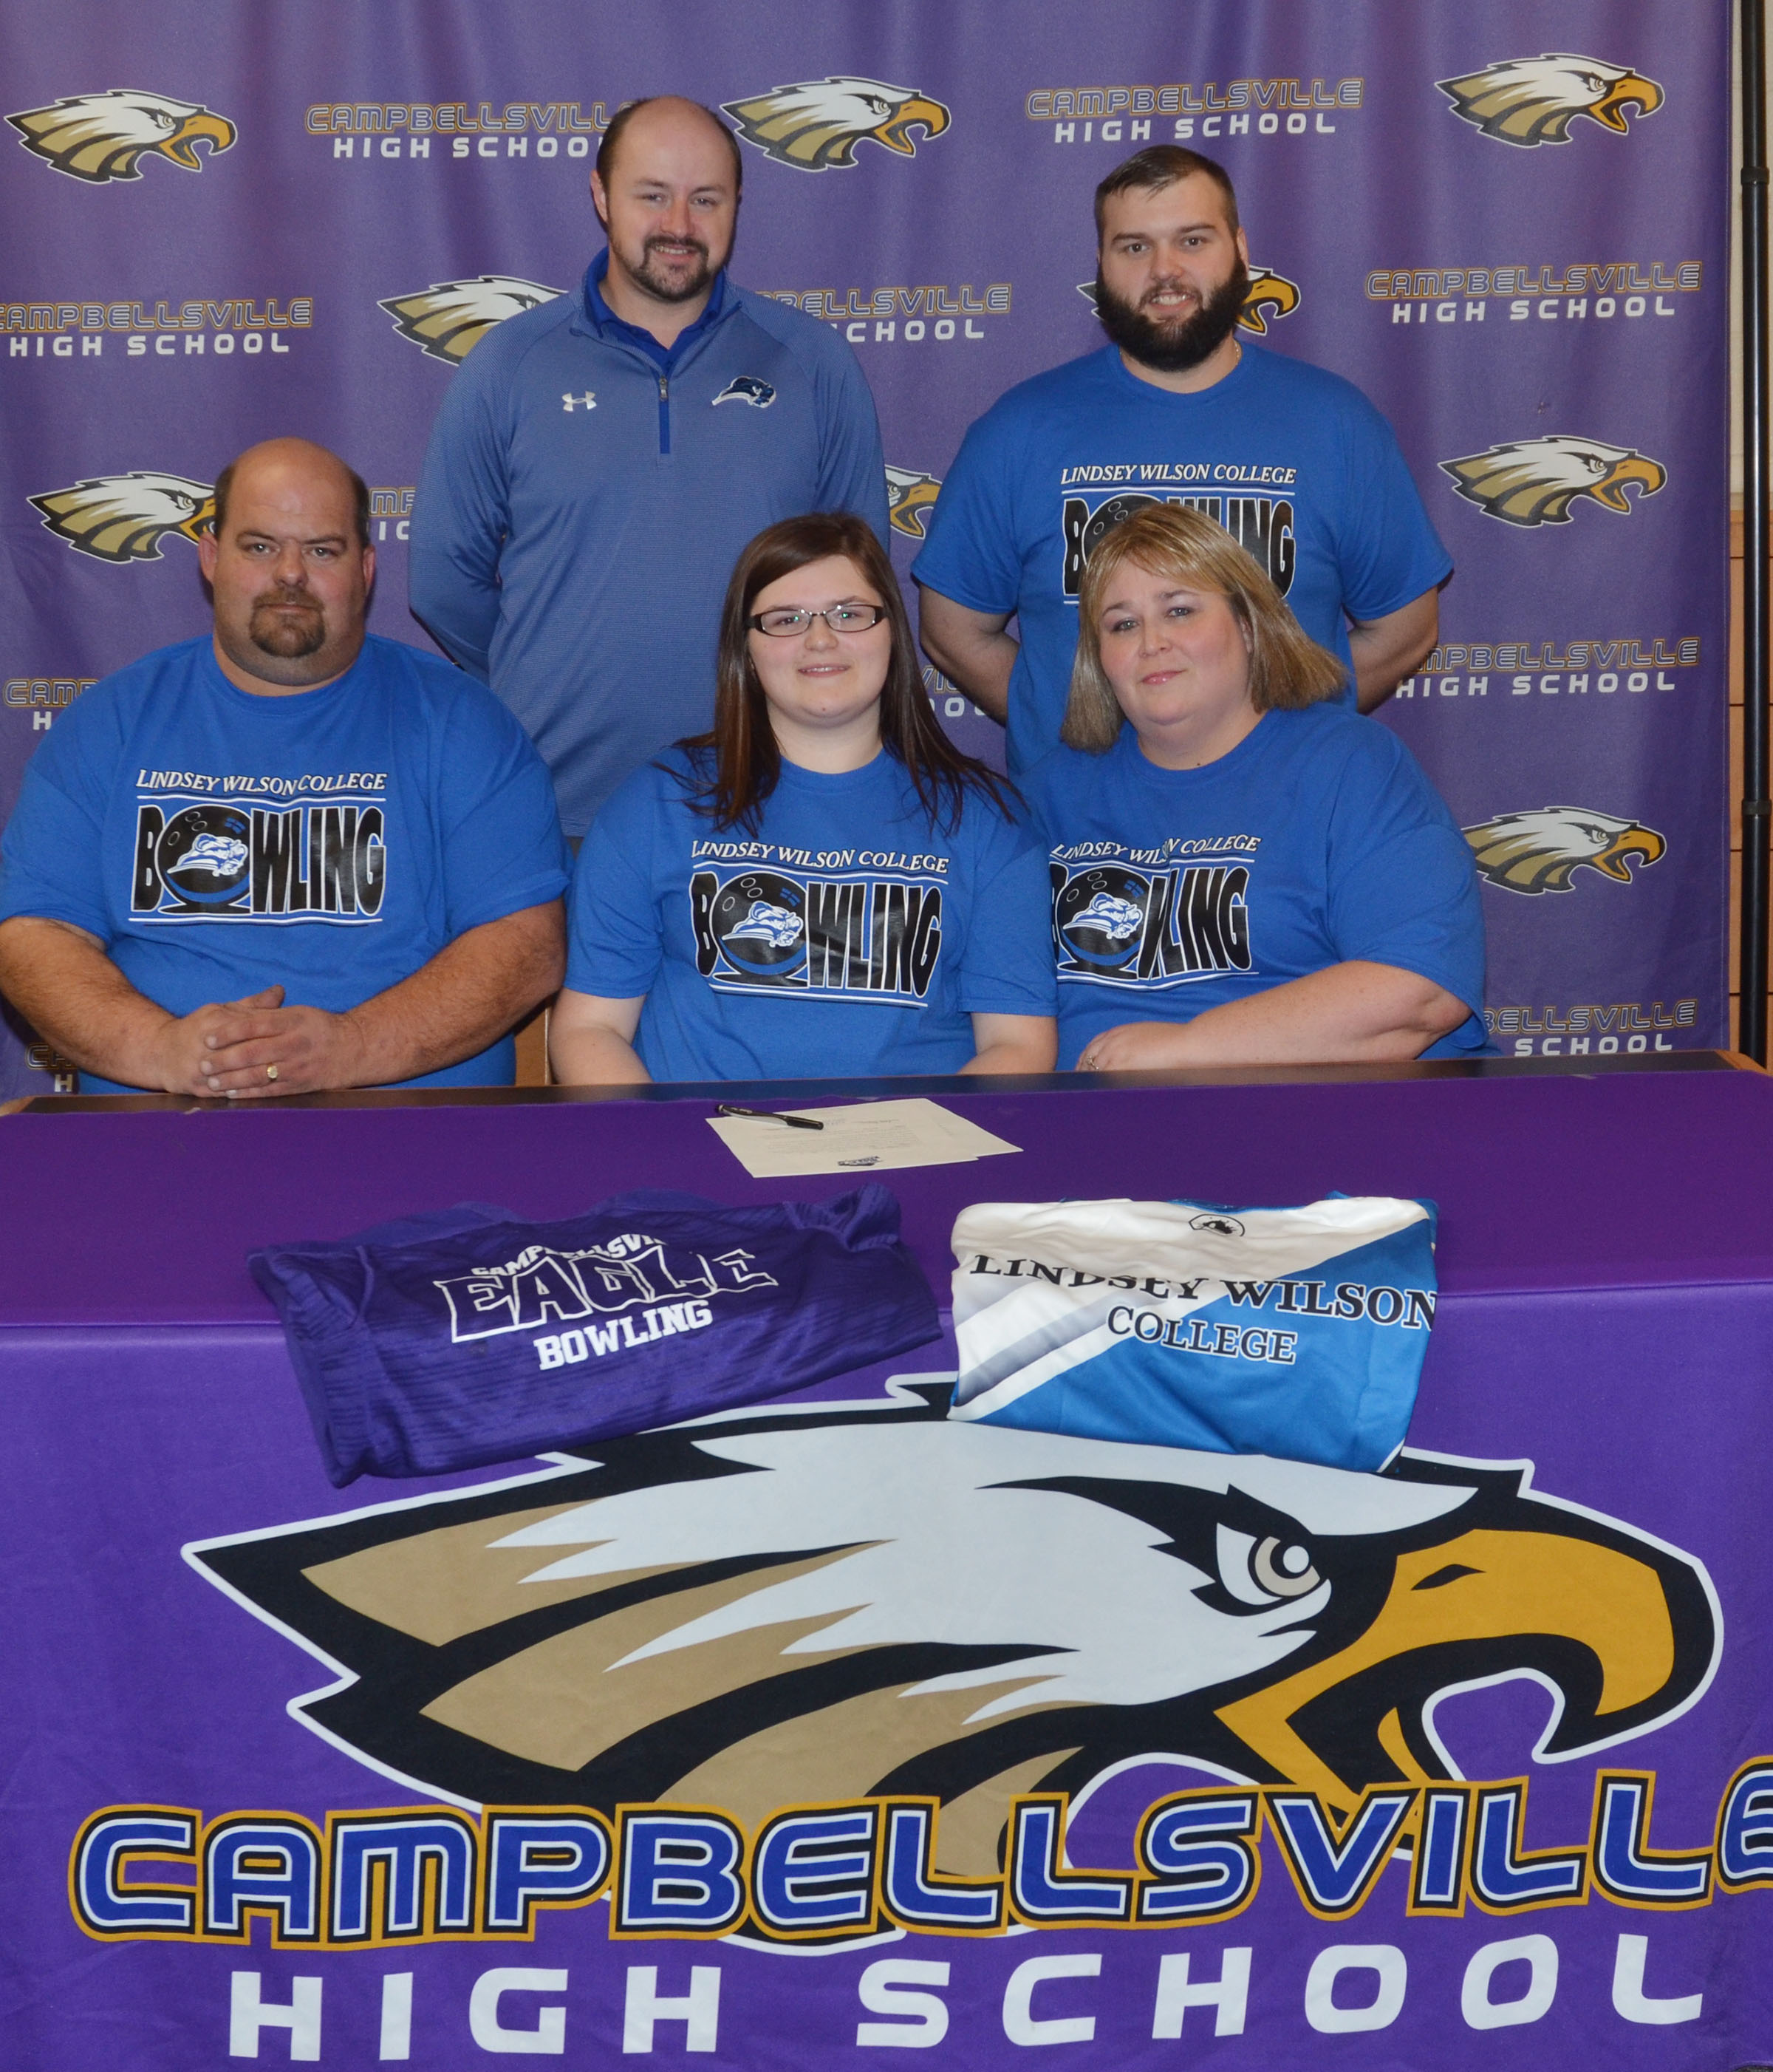 Campbellsville High School senior Vera Brown will continue her academic and bowling career at Lindsey Wilson College in the fall. She officially signed her letter of intent in a special ceremony on Wednesday, Feb. 1. She is pictured with her parents, from left, front, father Shannon Brown and mother Tonya Tate. Back, LWC bowling coach Brandon Burns and stepfather Andrew Tate.